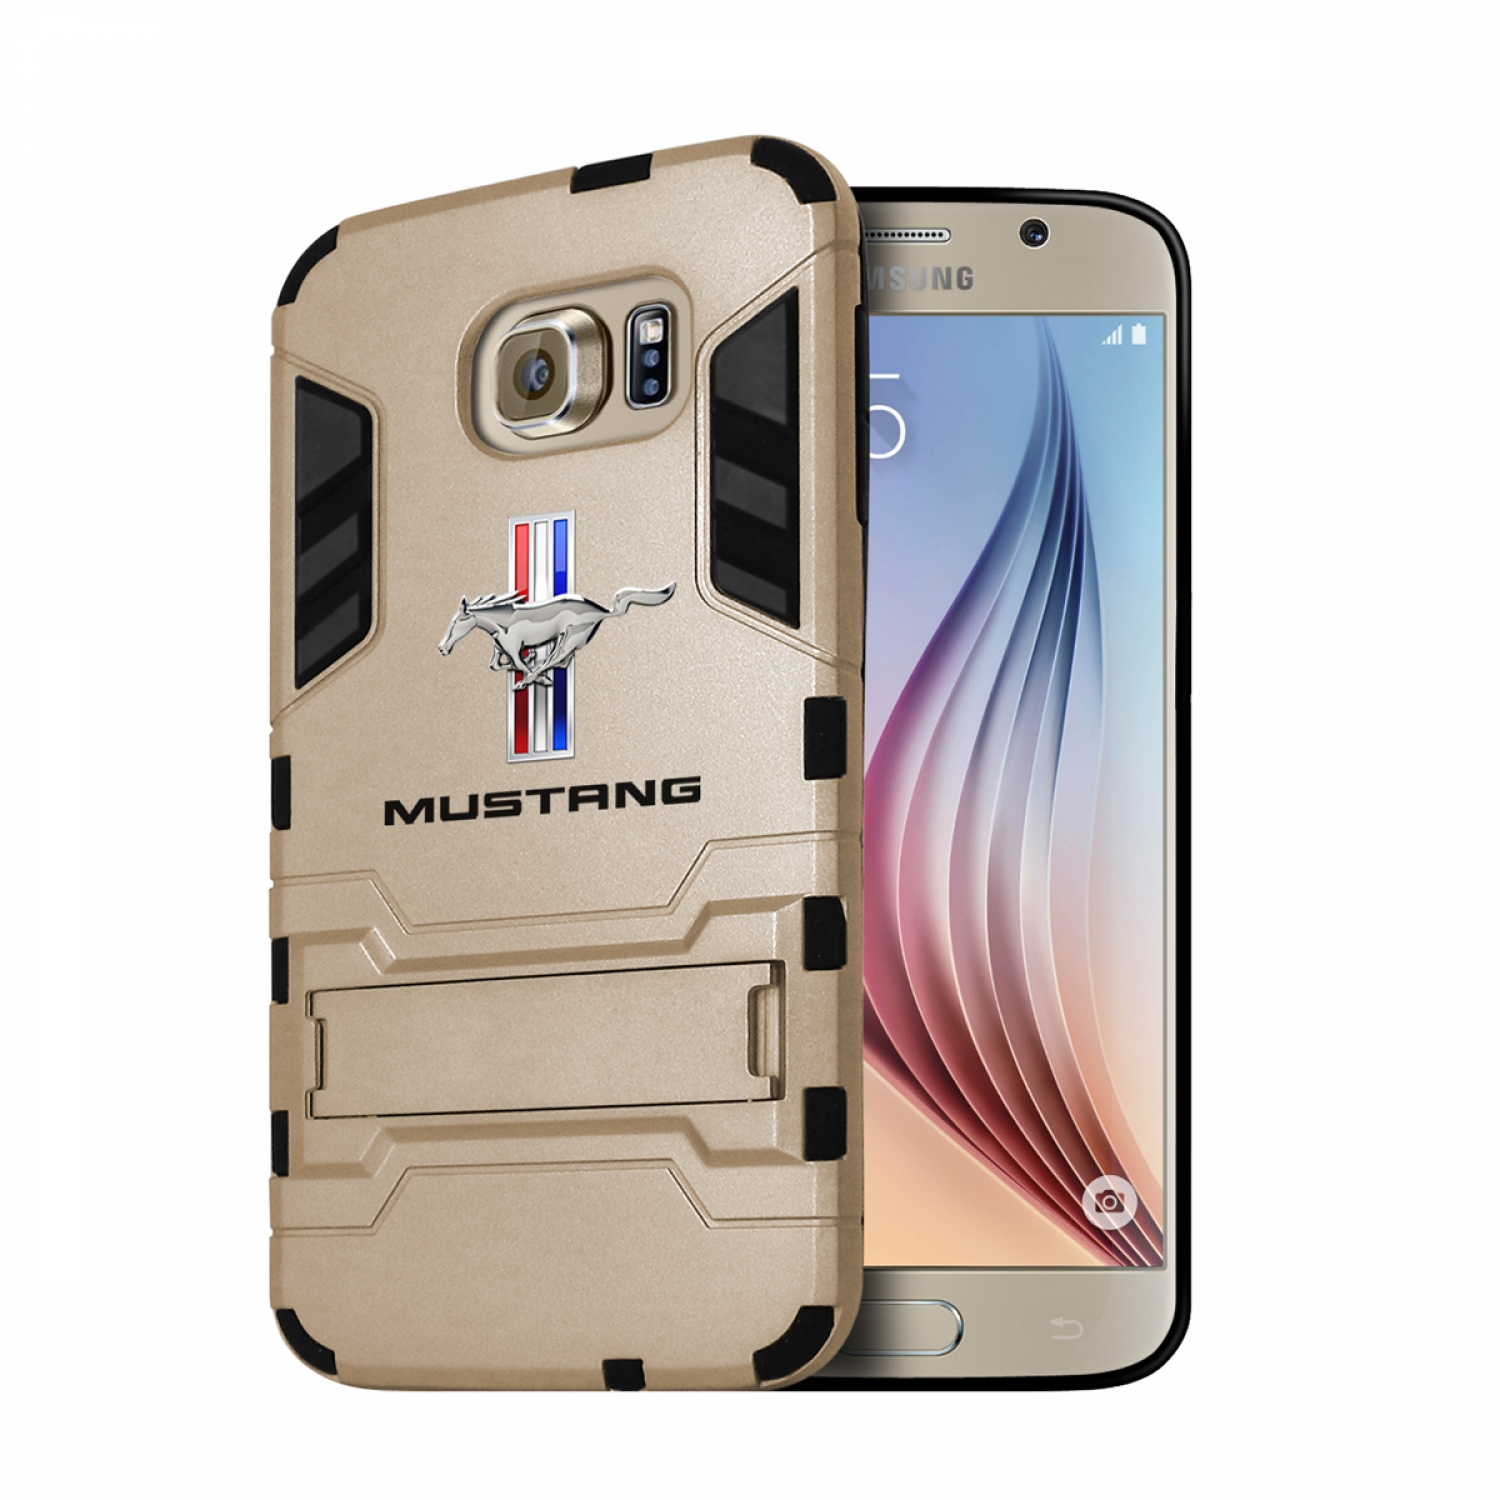 Ford Mustang Tri-Bar Samsung Galaxy S6 Shockproof TPU ABS Hybrid Golden Phone Case